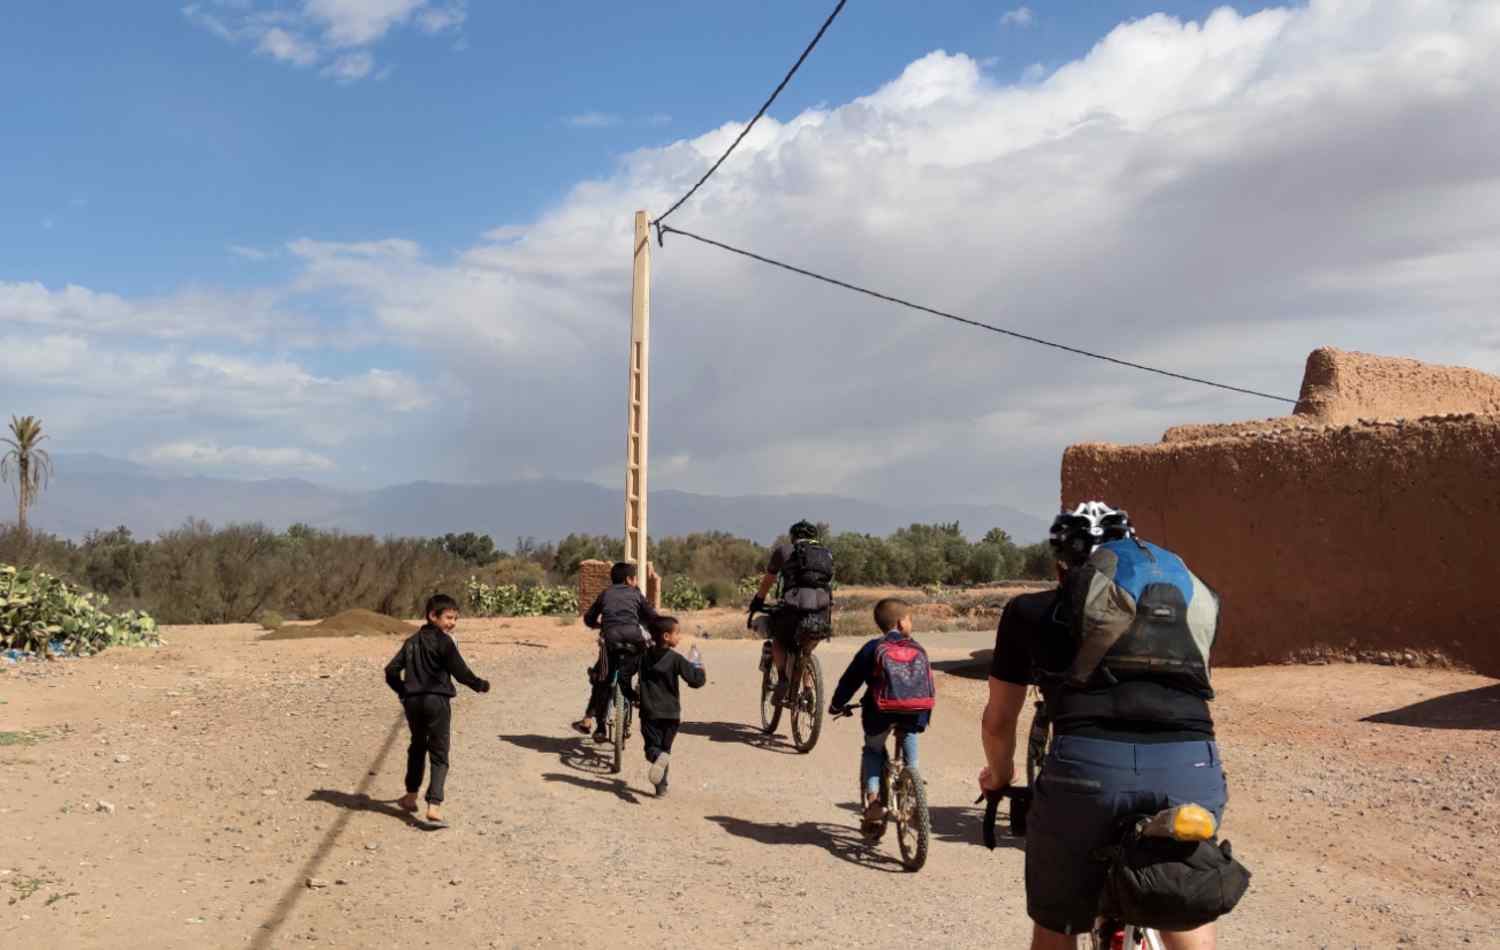 Two adults and two children riding their bikes in a Moroccan Village